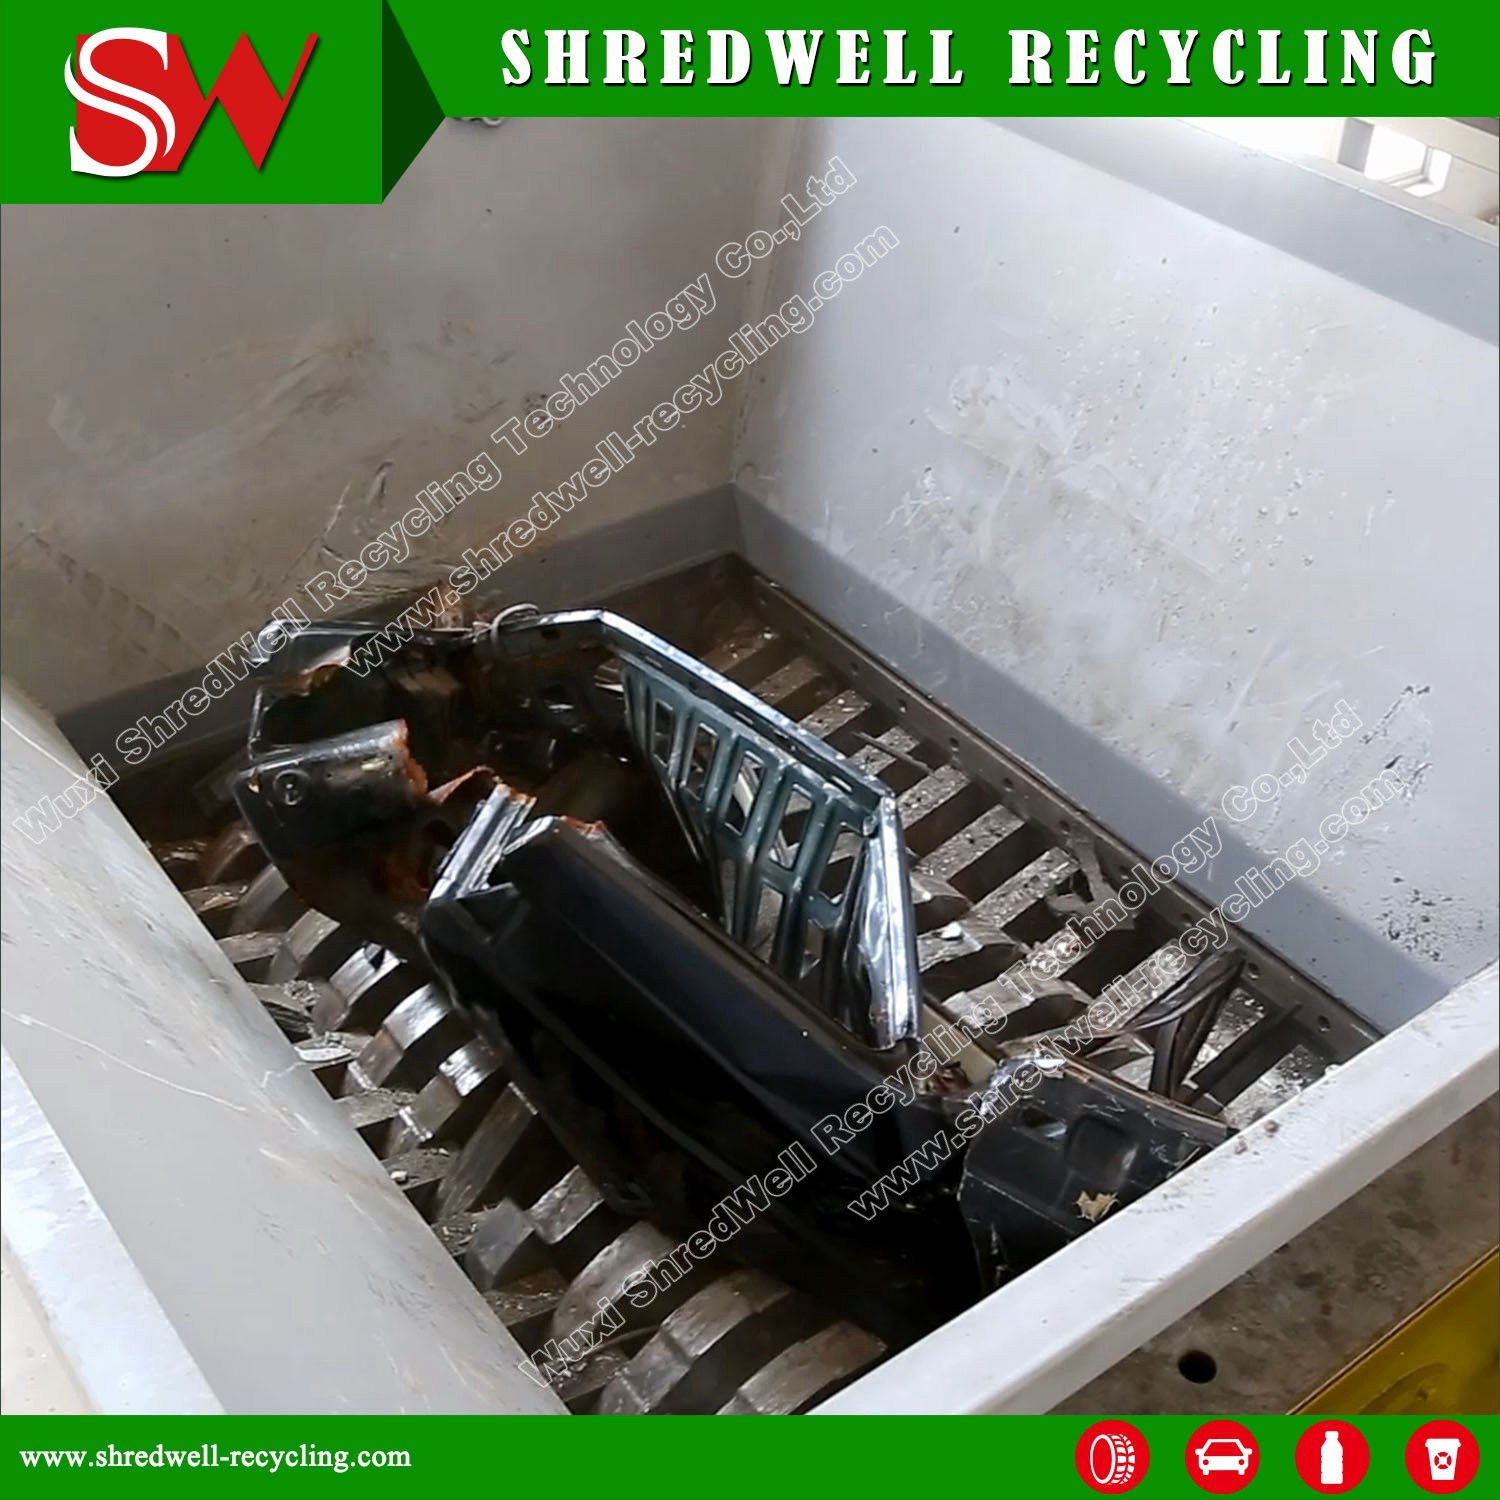 Siemens PLC Scrap Metal Recycling Plant / Waste Car Recycle Plant for Automobile or Metal Drum